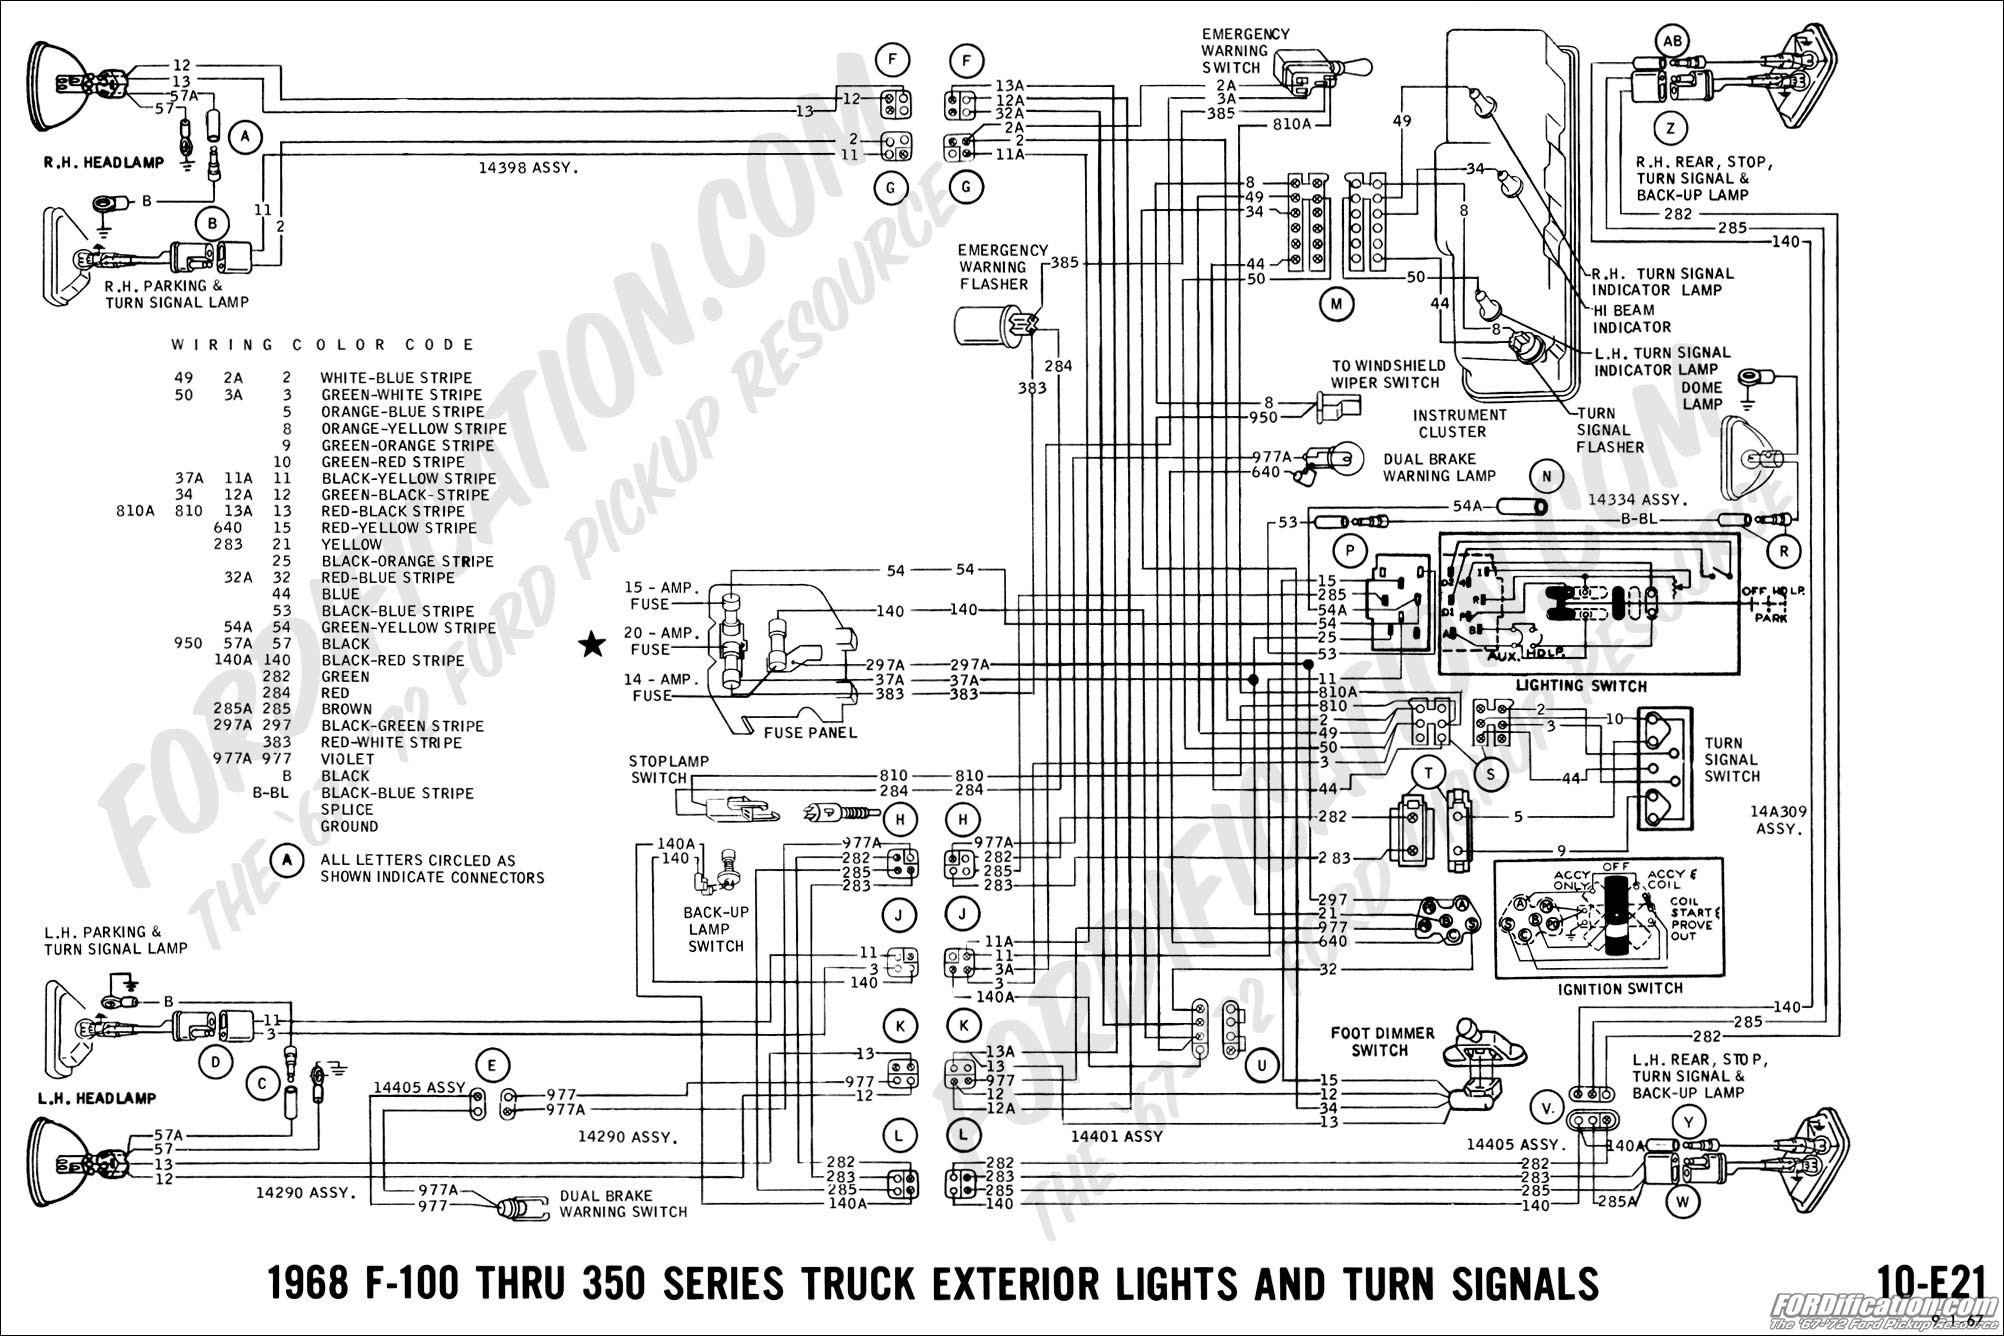 Ford F150 Wiring Diagrams Awesome Turn Signal Wire Diagram Turn Signal Wiring Diagram New Sw Em